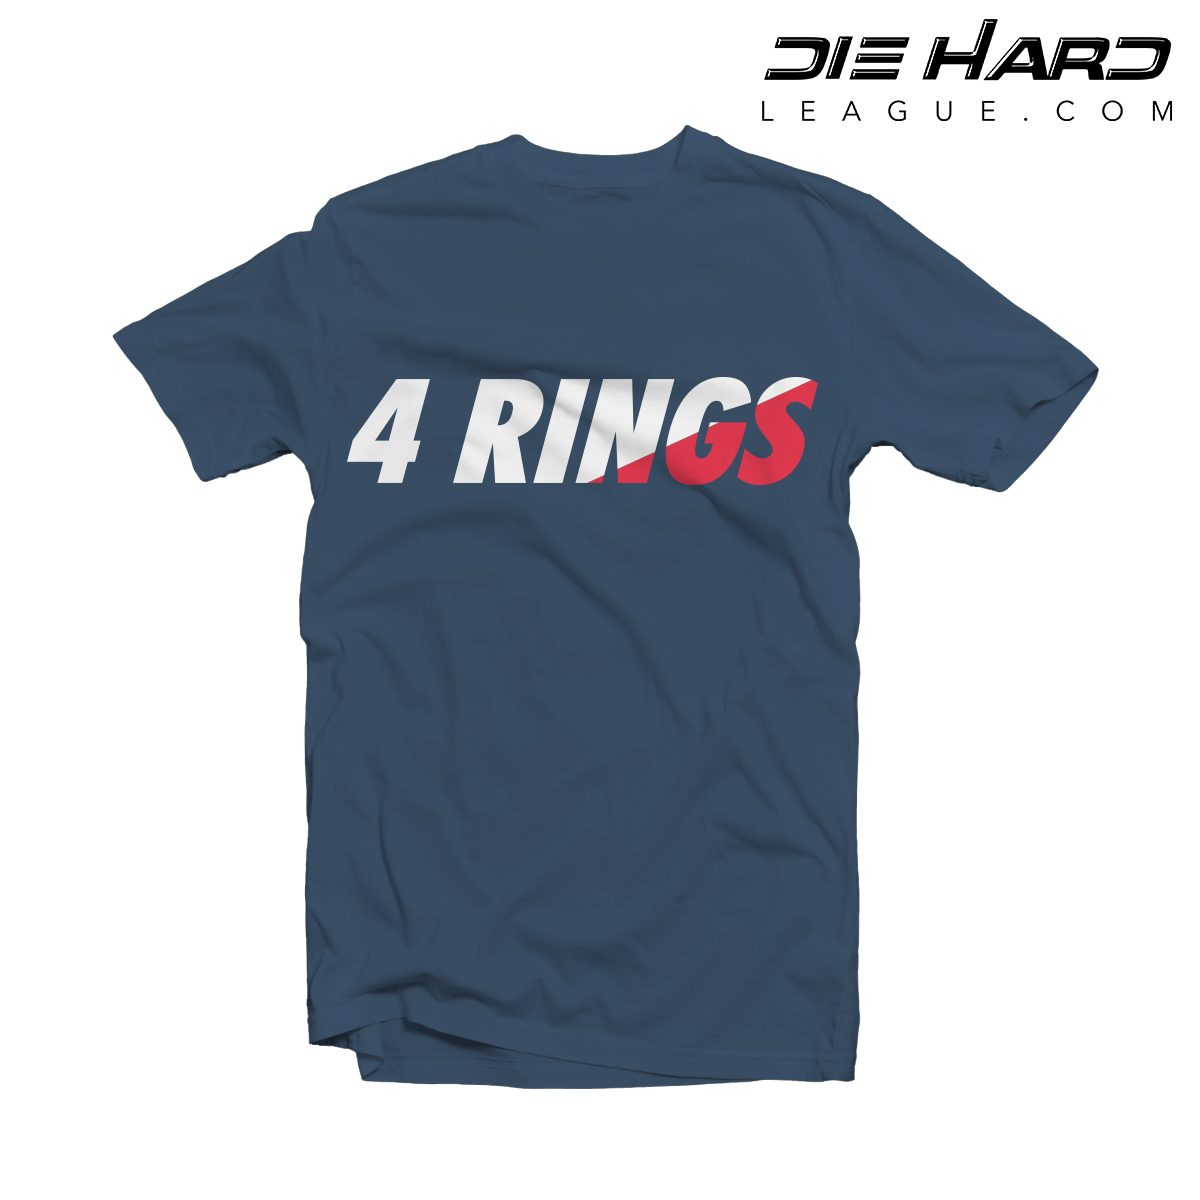 New england patriots t shirt 4 rings navy tee nfl New england patriots shirts